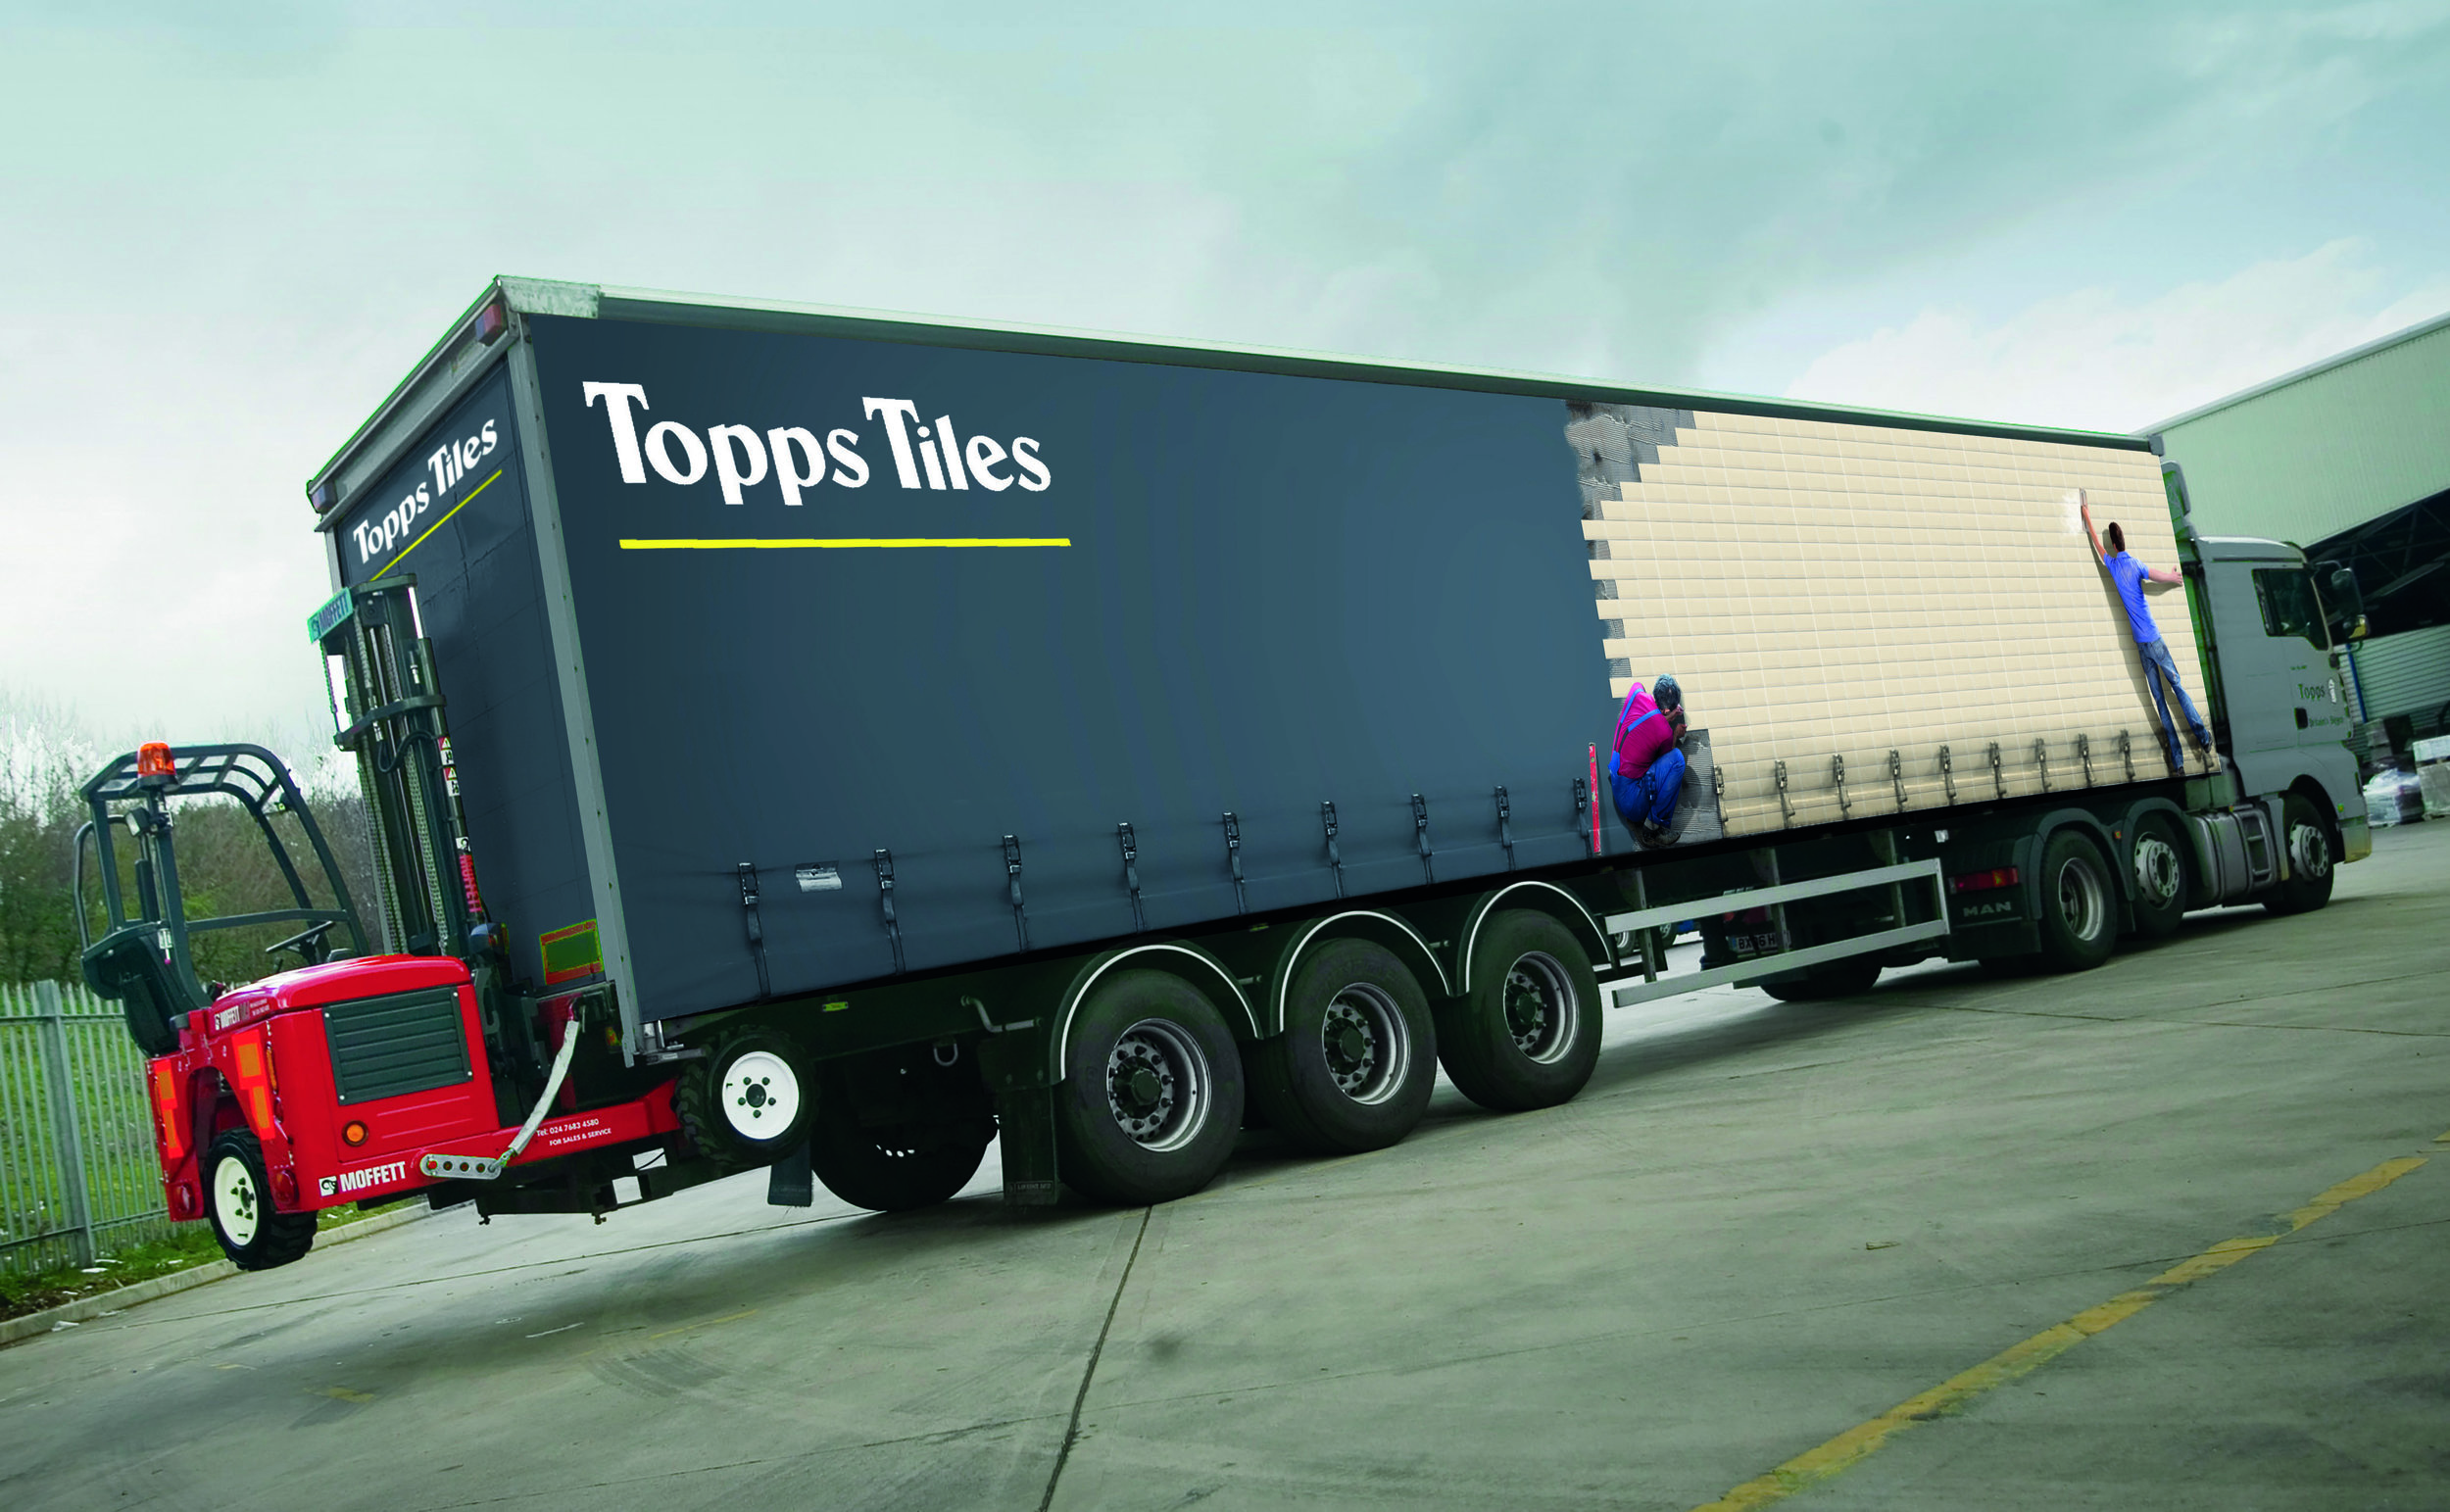 Truck Livery. Concept. Design. Art direction. Retouching.   When Topps Tiles wanted new vehicle liveries, I decided to tile the truck, turning each side into a canvas on which to display their best products. By using scale product and tradesmen, I created an unforgettable 'tiling on the move' visual that was adaptable and as varied as their stock.  Commissioned at Makalu.   www.makaluagency.co.uk